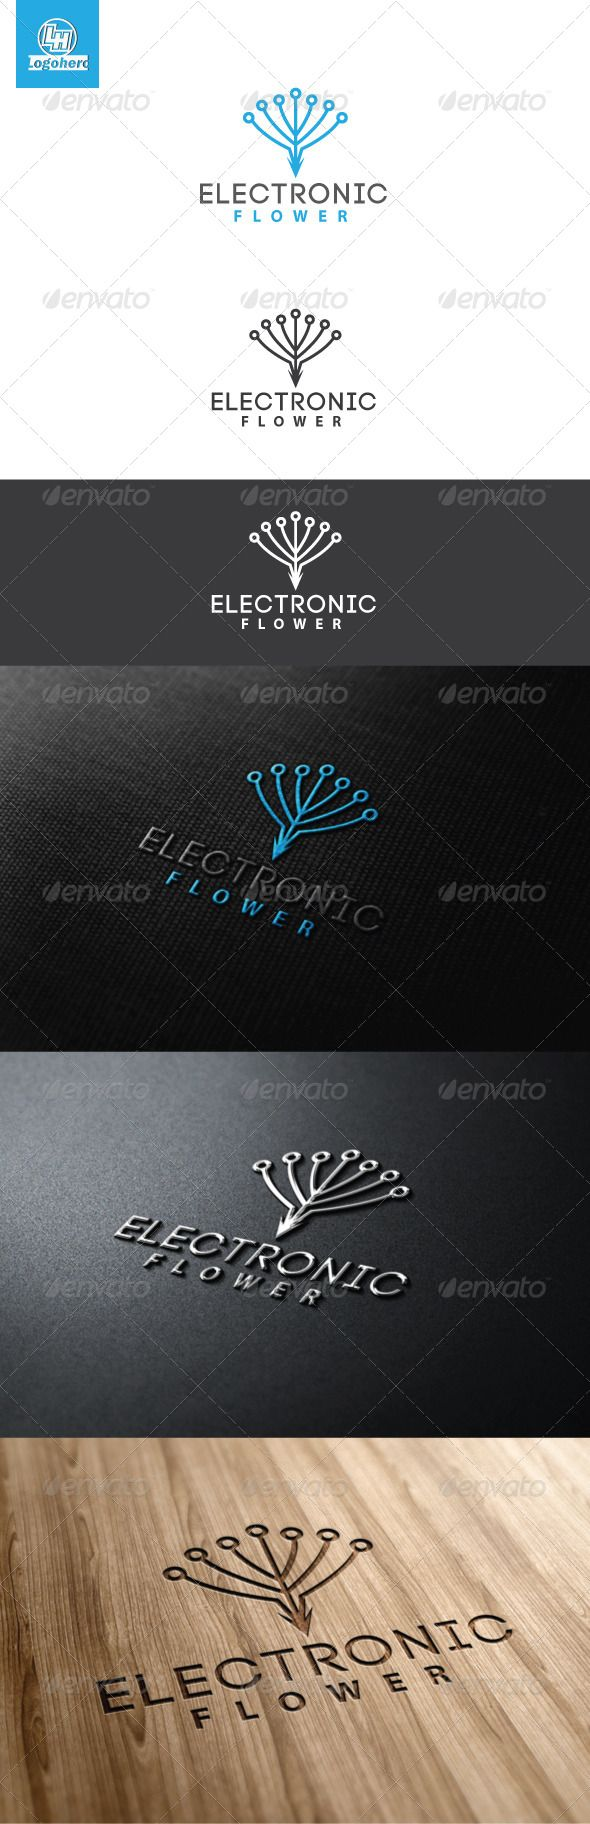 Electronic Flower Logo Template #GraphicRiver Electronic Flower Logo Template is An excellent logo template highly suitable for web, blog, mascot, creative studio, design agencies, programmers, web developers, applications, software, IT, Computer These files consists of resizable vector format files like AI, EPS , and PDF . Also PSD format for raster version alternative. font used Code Created: 29April13 GraphicsFilesIncluded: PhotoshopPSD #VectorEPS #AIIllustrator Layered: Yes…